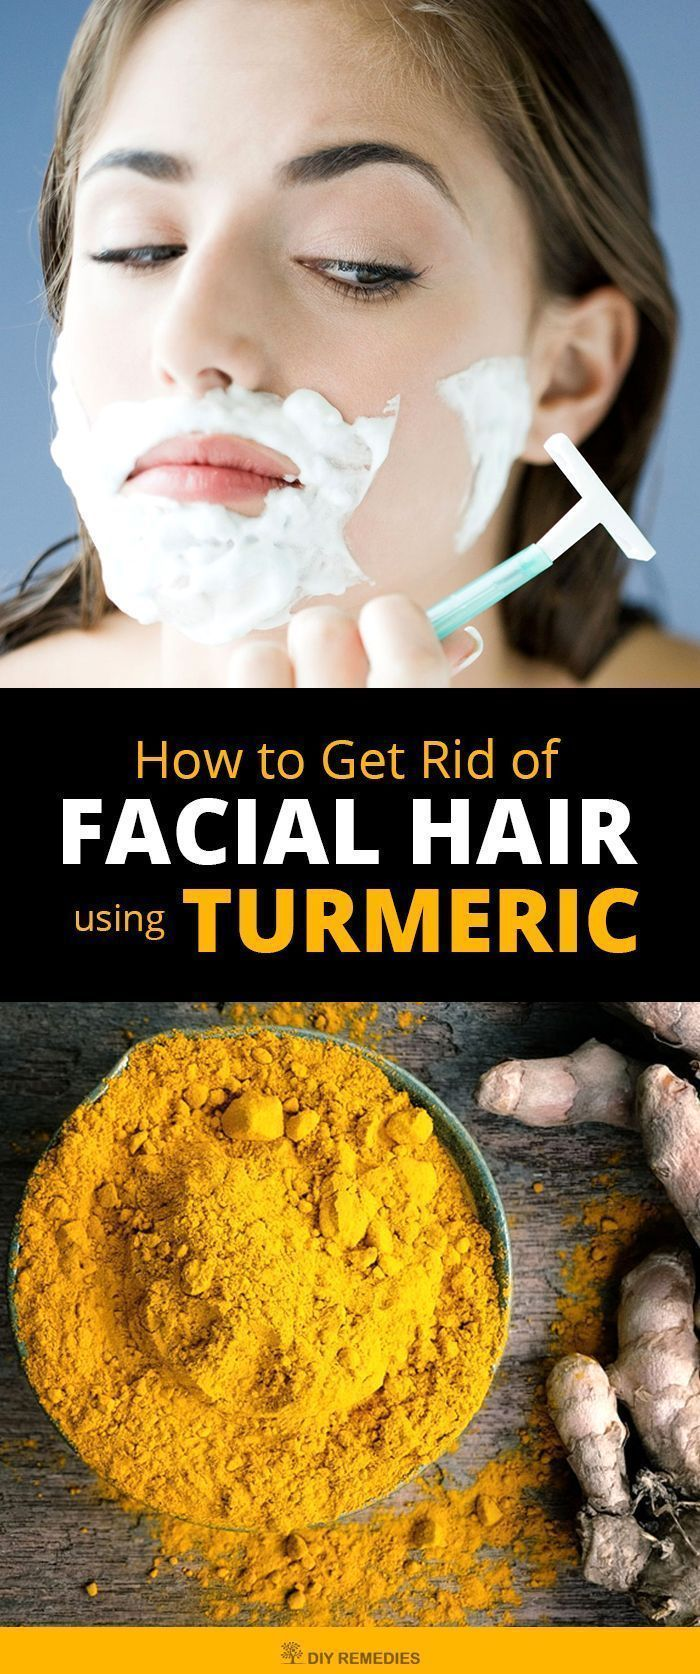 How To Get Rid Of Facial Hair Using Turmeric Here Are Some